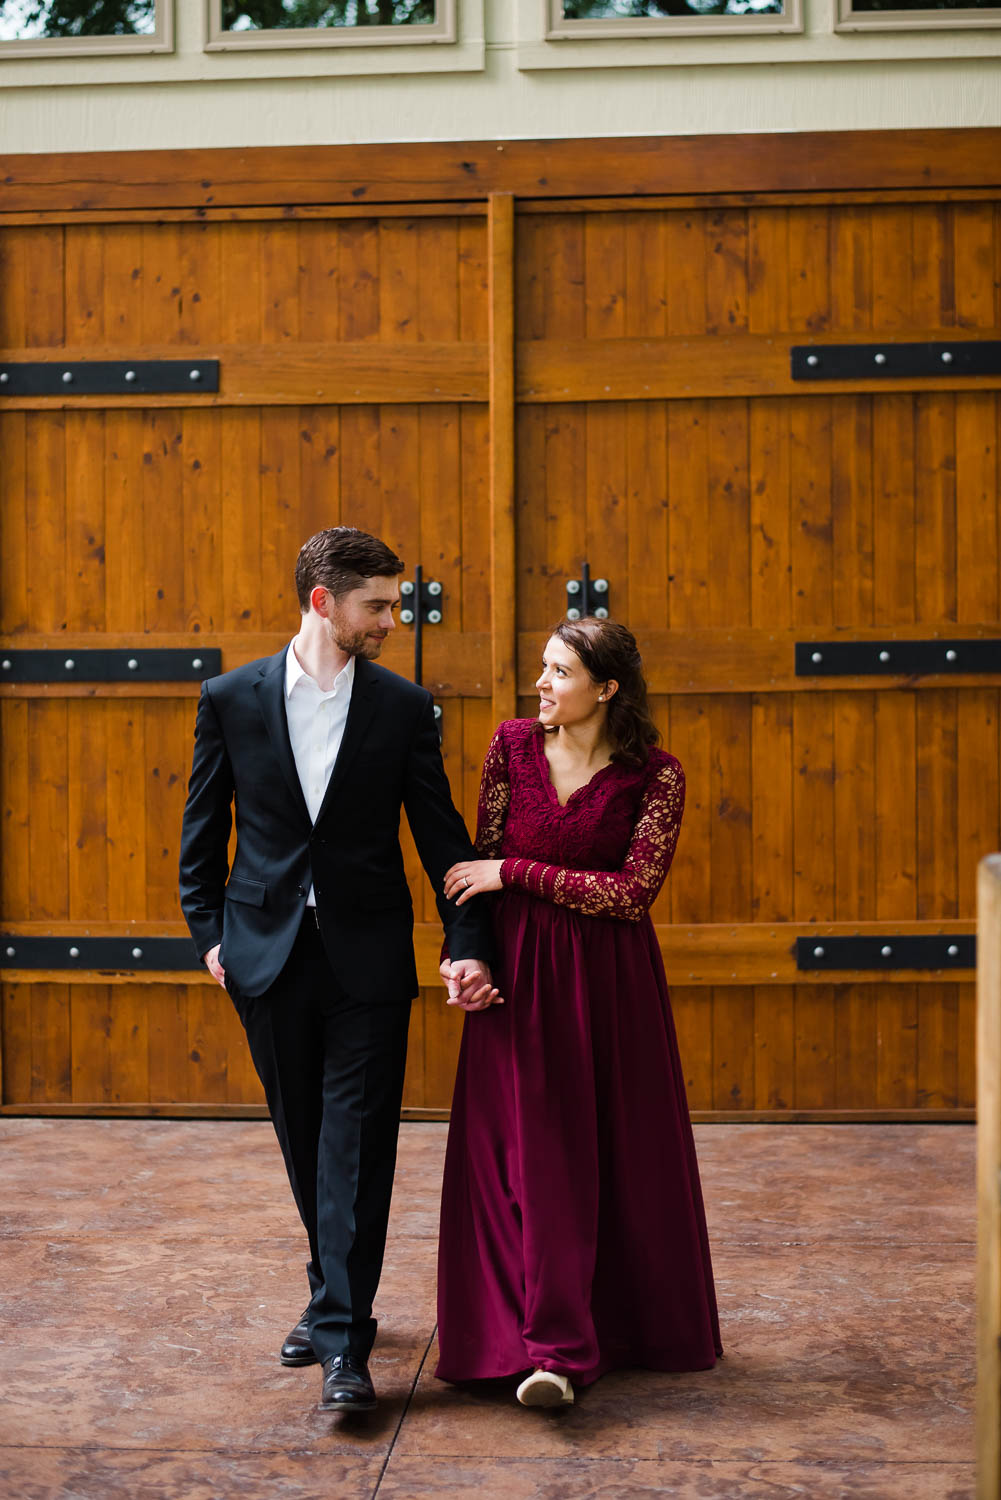 two people outside walking in front of the huge wooden doors at Hiwassee river weddings venue